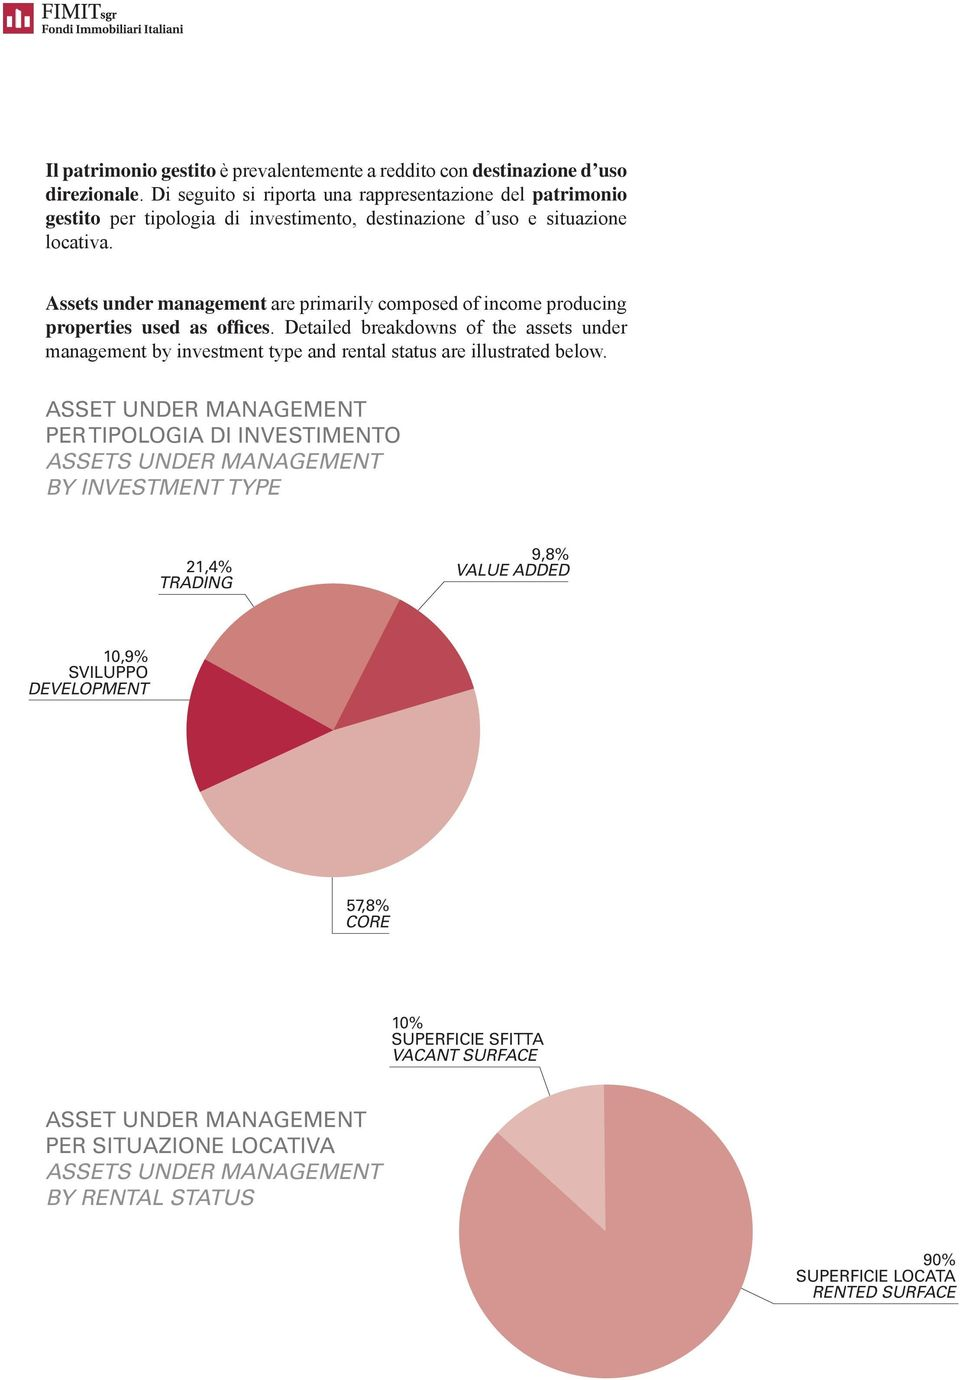 Assets under management are primarily composed of income producing properties used as offices.